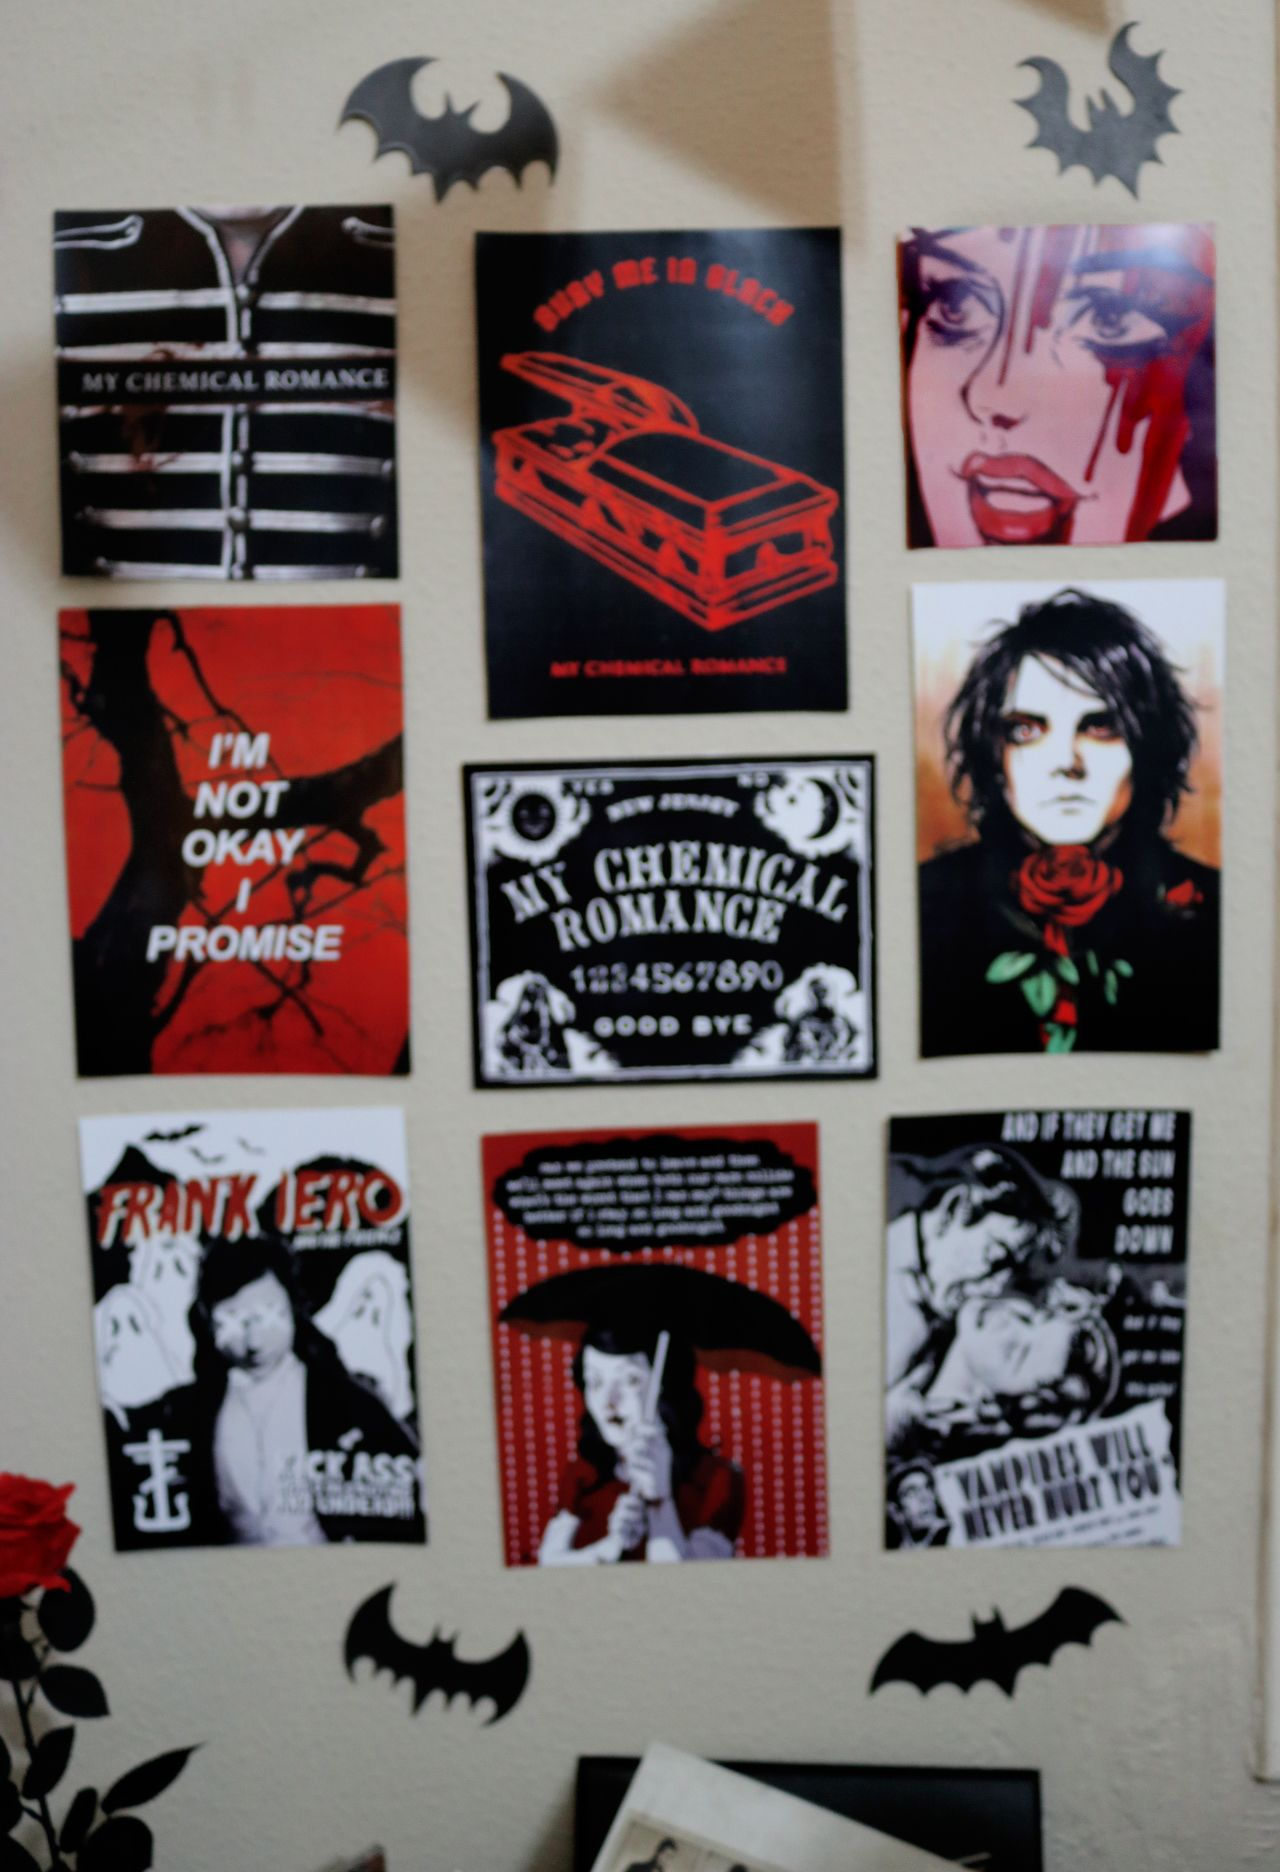 My Chemical Romance Theme Party Posters In 2020 My Chemical